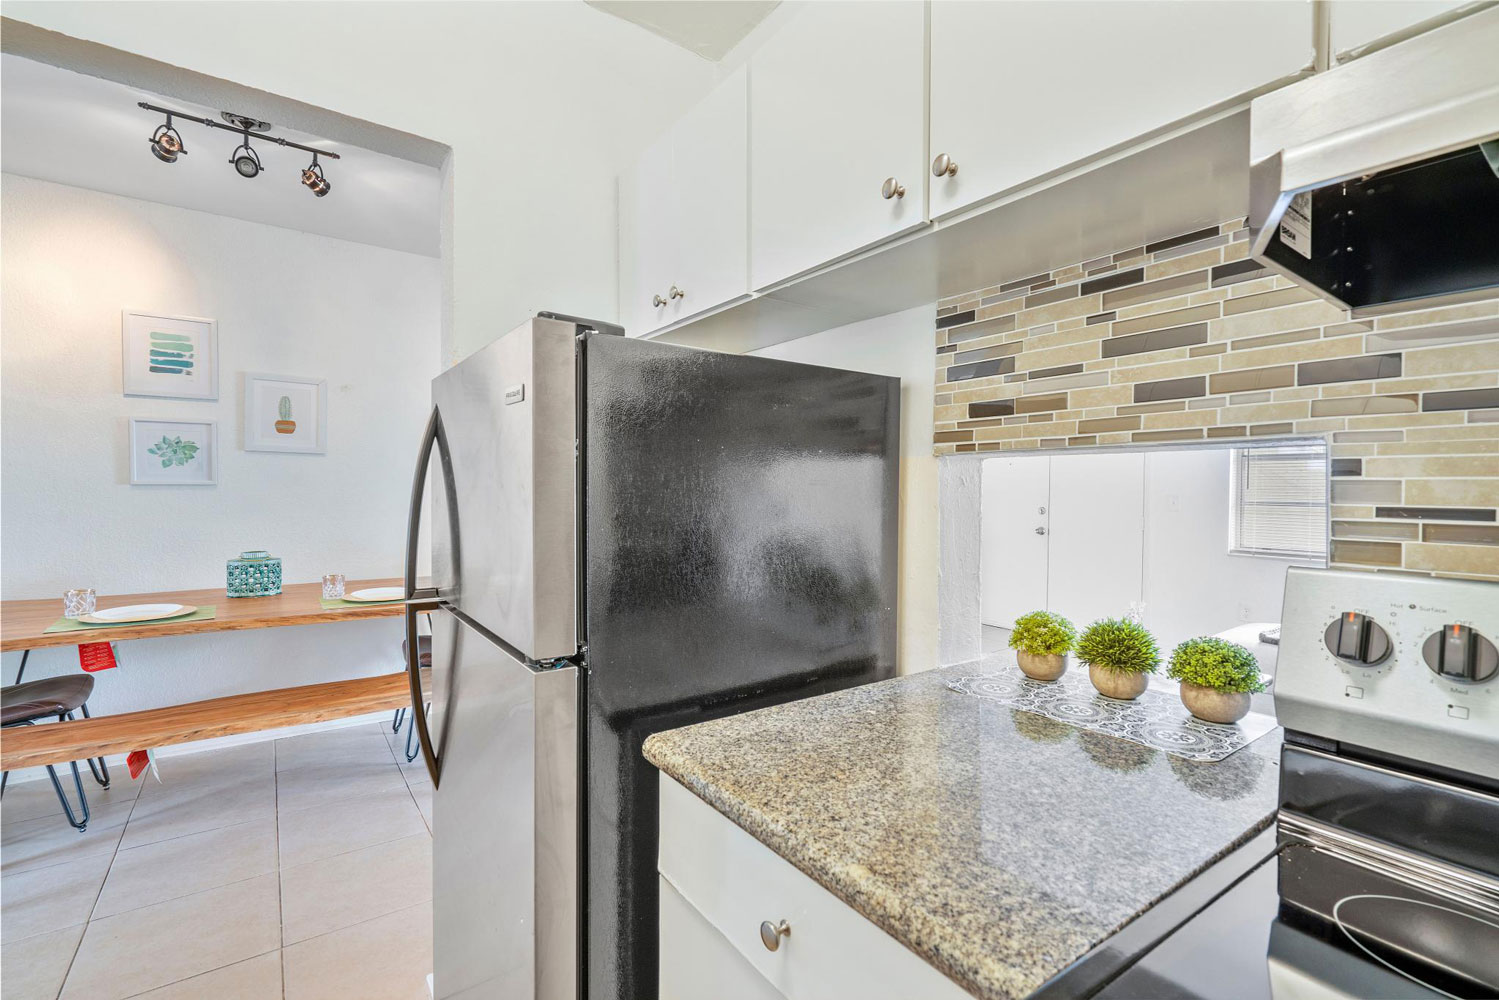 Stainless Steel Appliances at New Castle Lake Apartments in Miami, FL